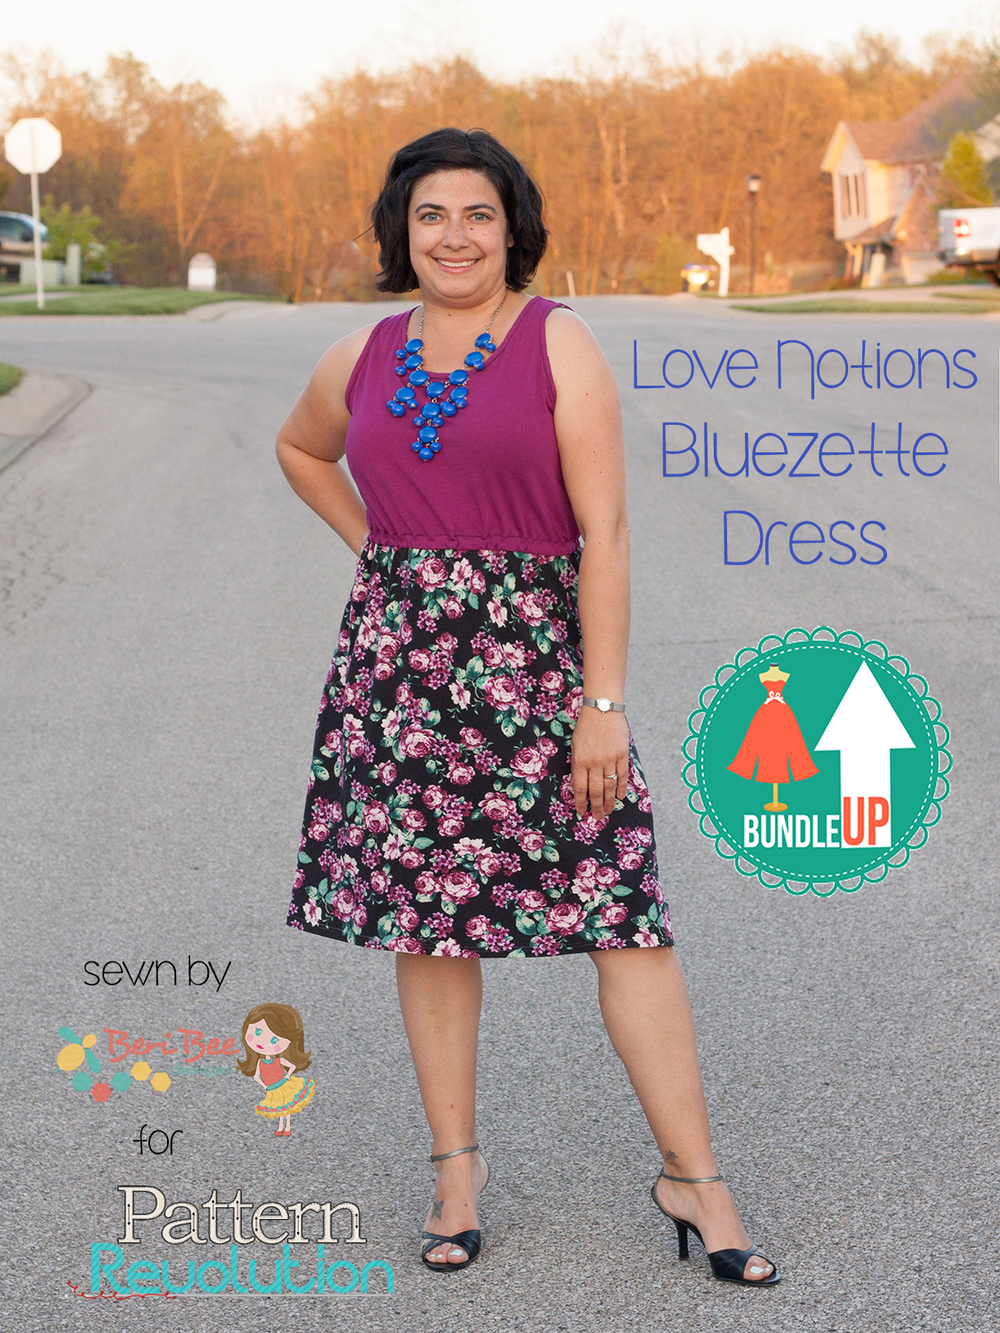 The Bluezette Dress from Love Notions- Pattern Revolution